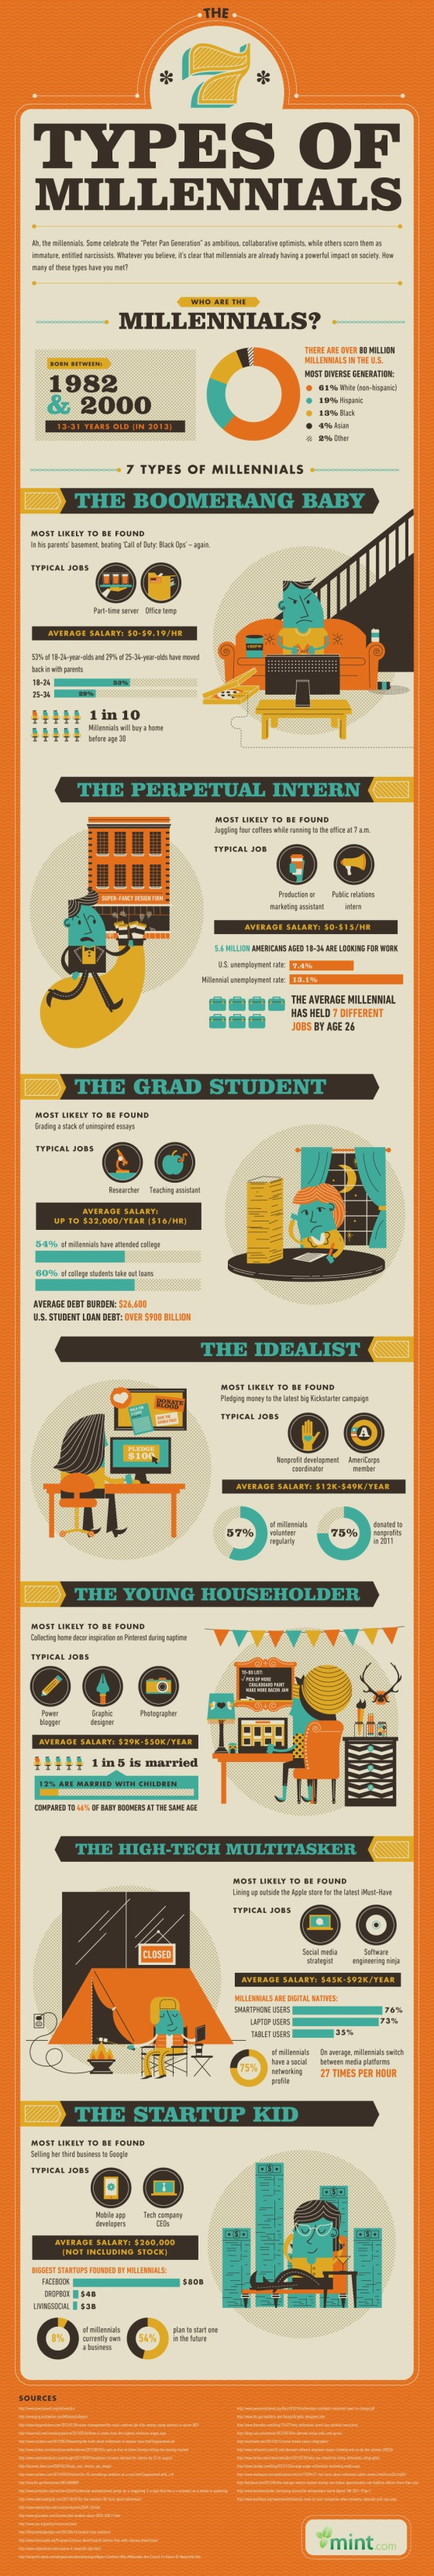 Infographic : The 7 Types of Millennials